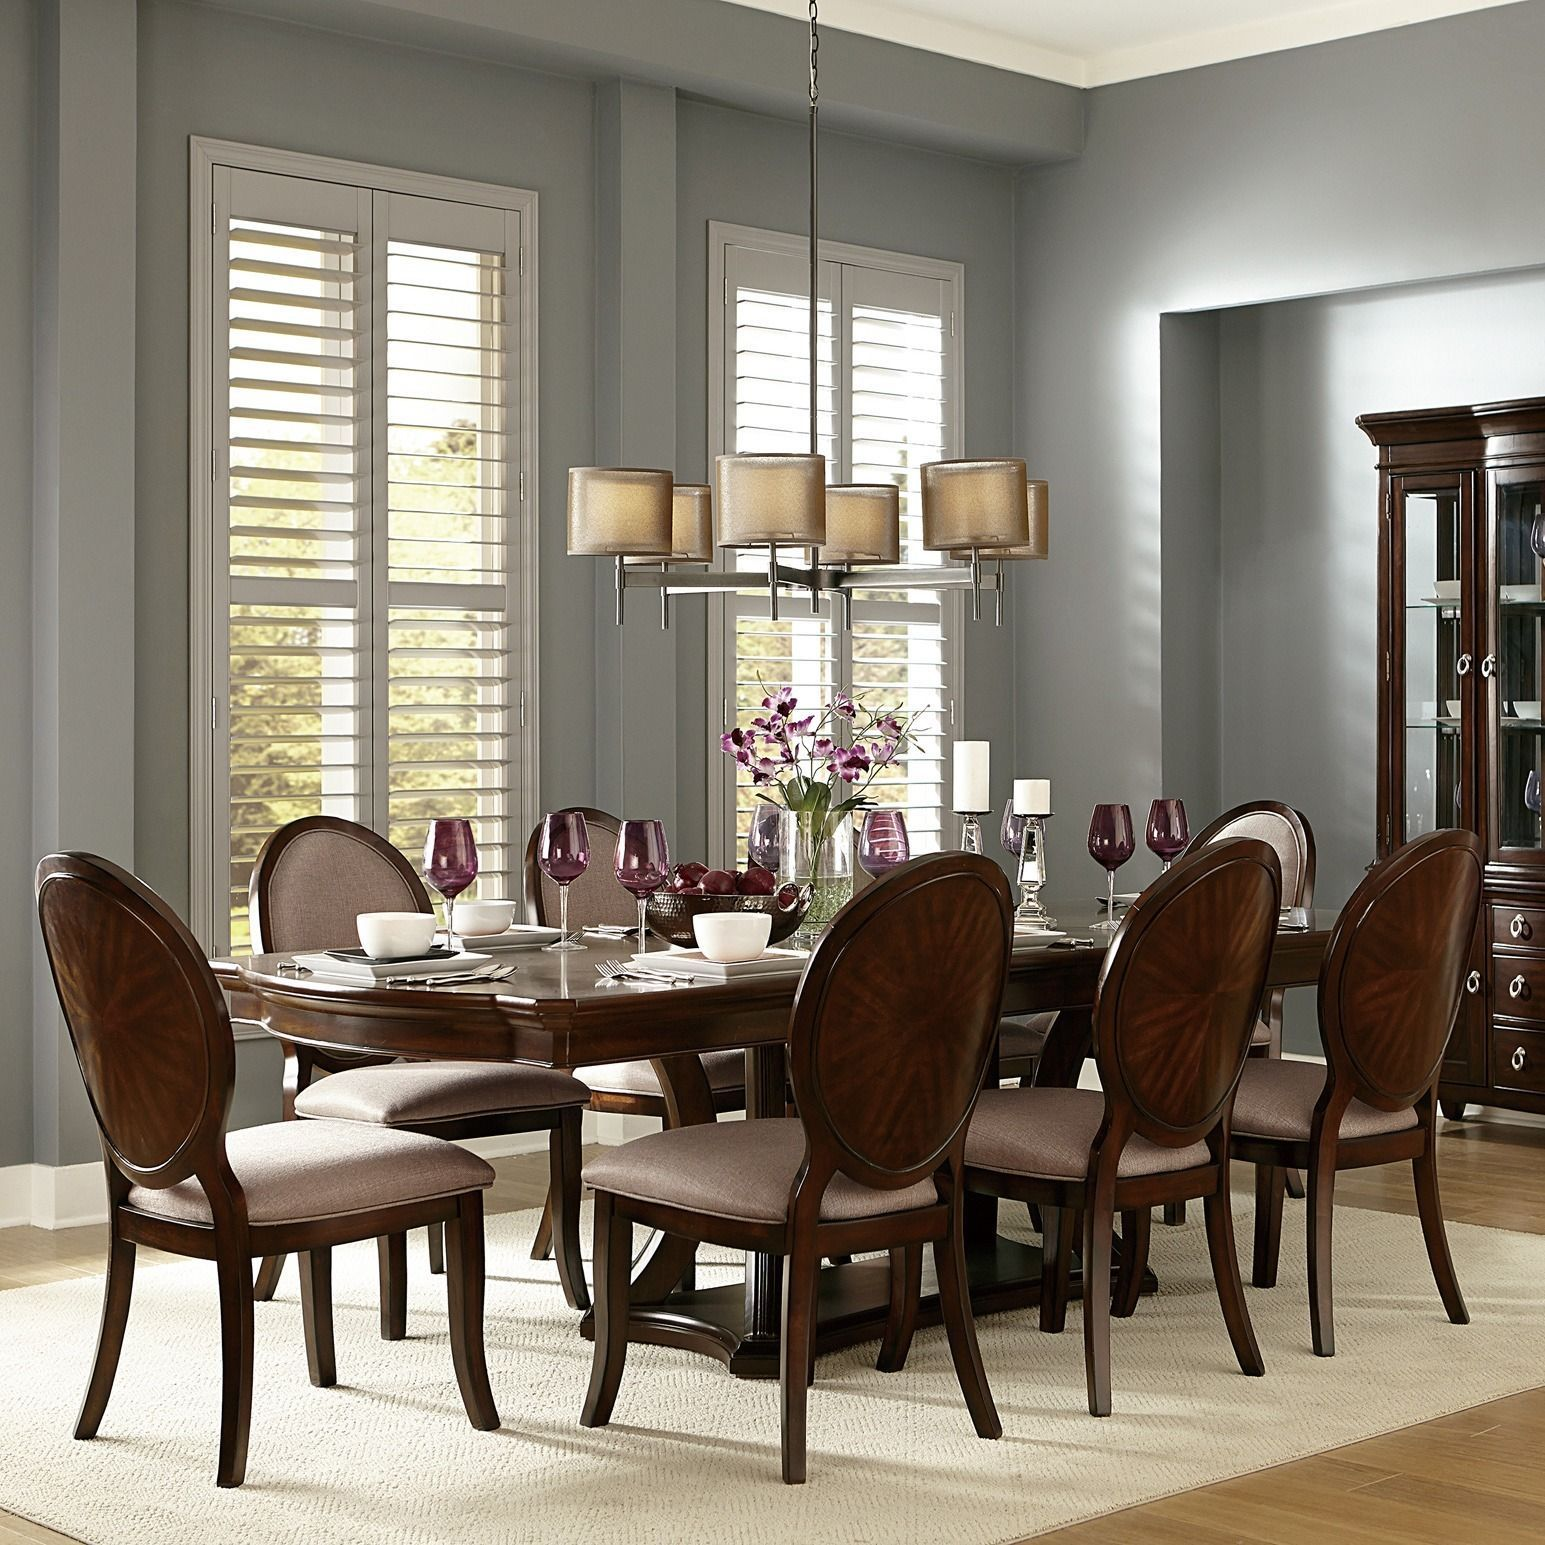 Verdiana Rich Brown Cherry Finish Extending Dining Set by iNSPIRE Q Classic  by iNSPIRE Q